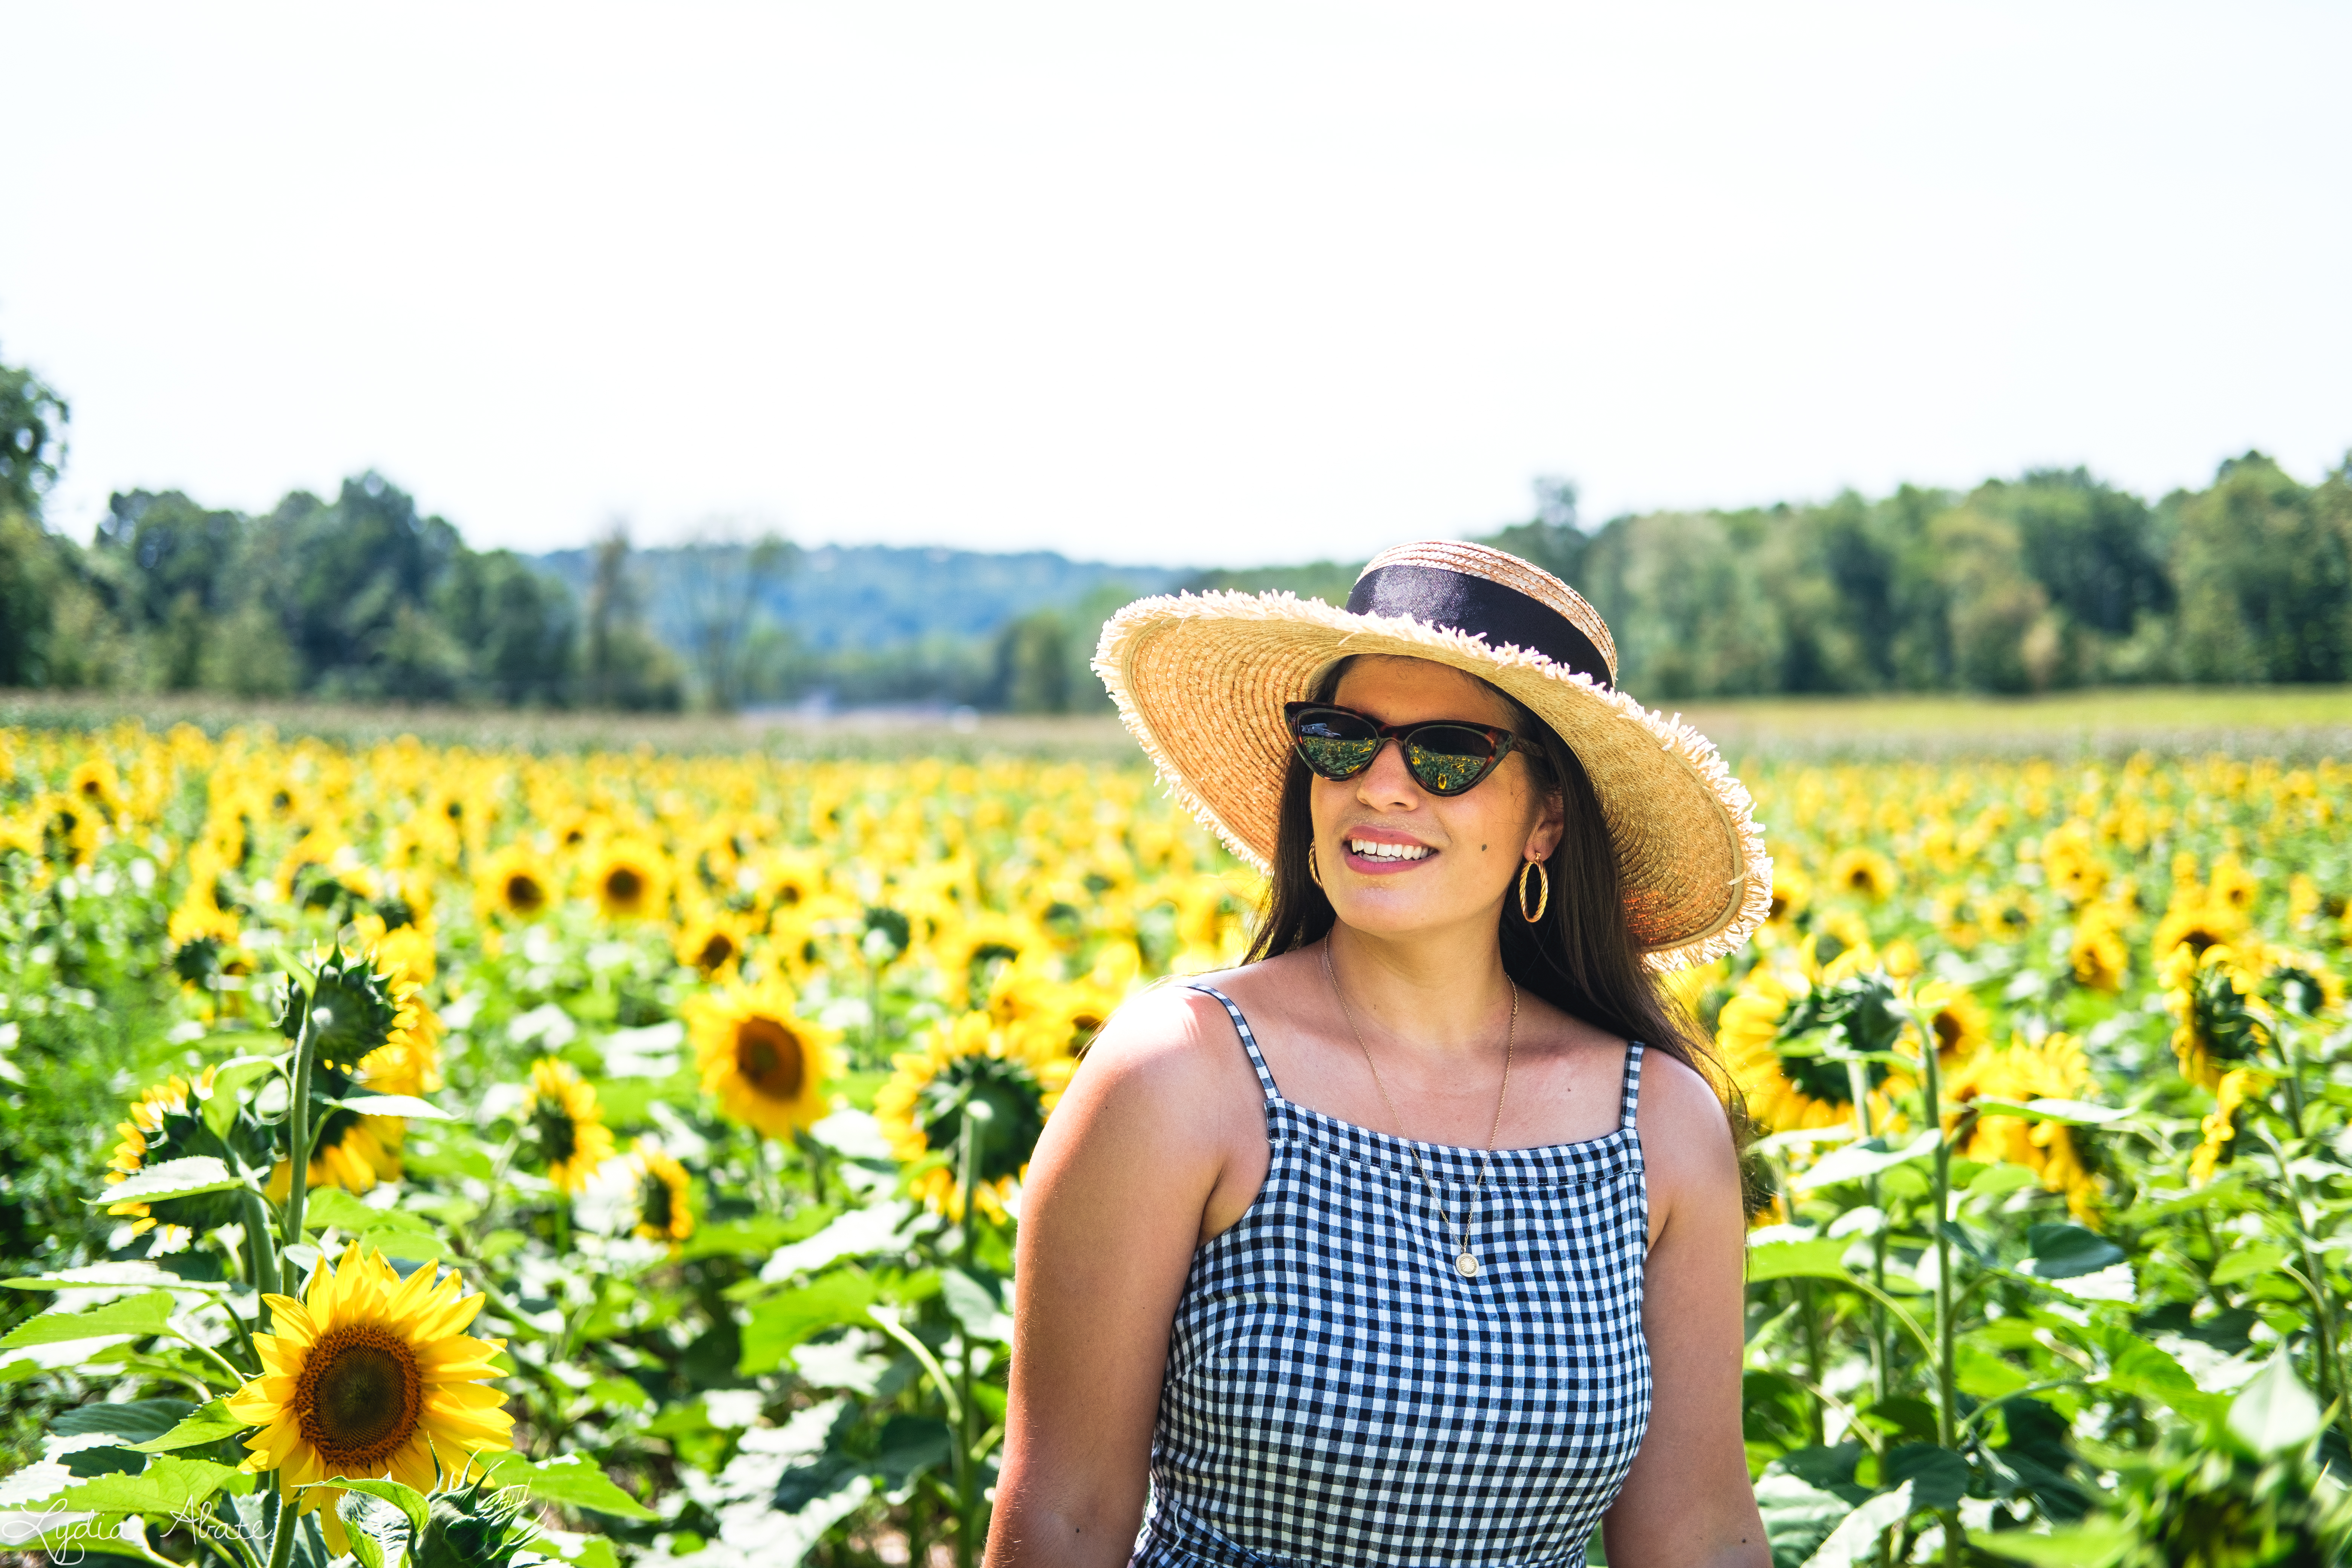 gingham maxi dress, straw hat, white caned leather tote bag, sunflowers-14.jpg